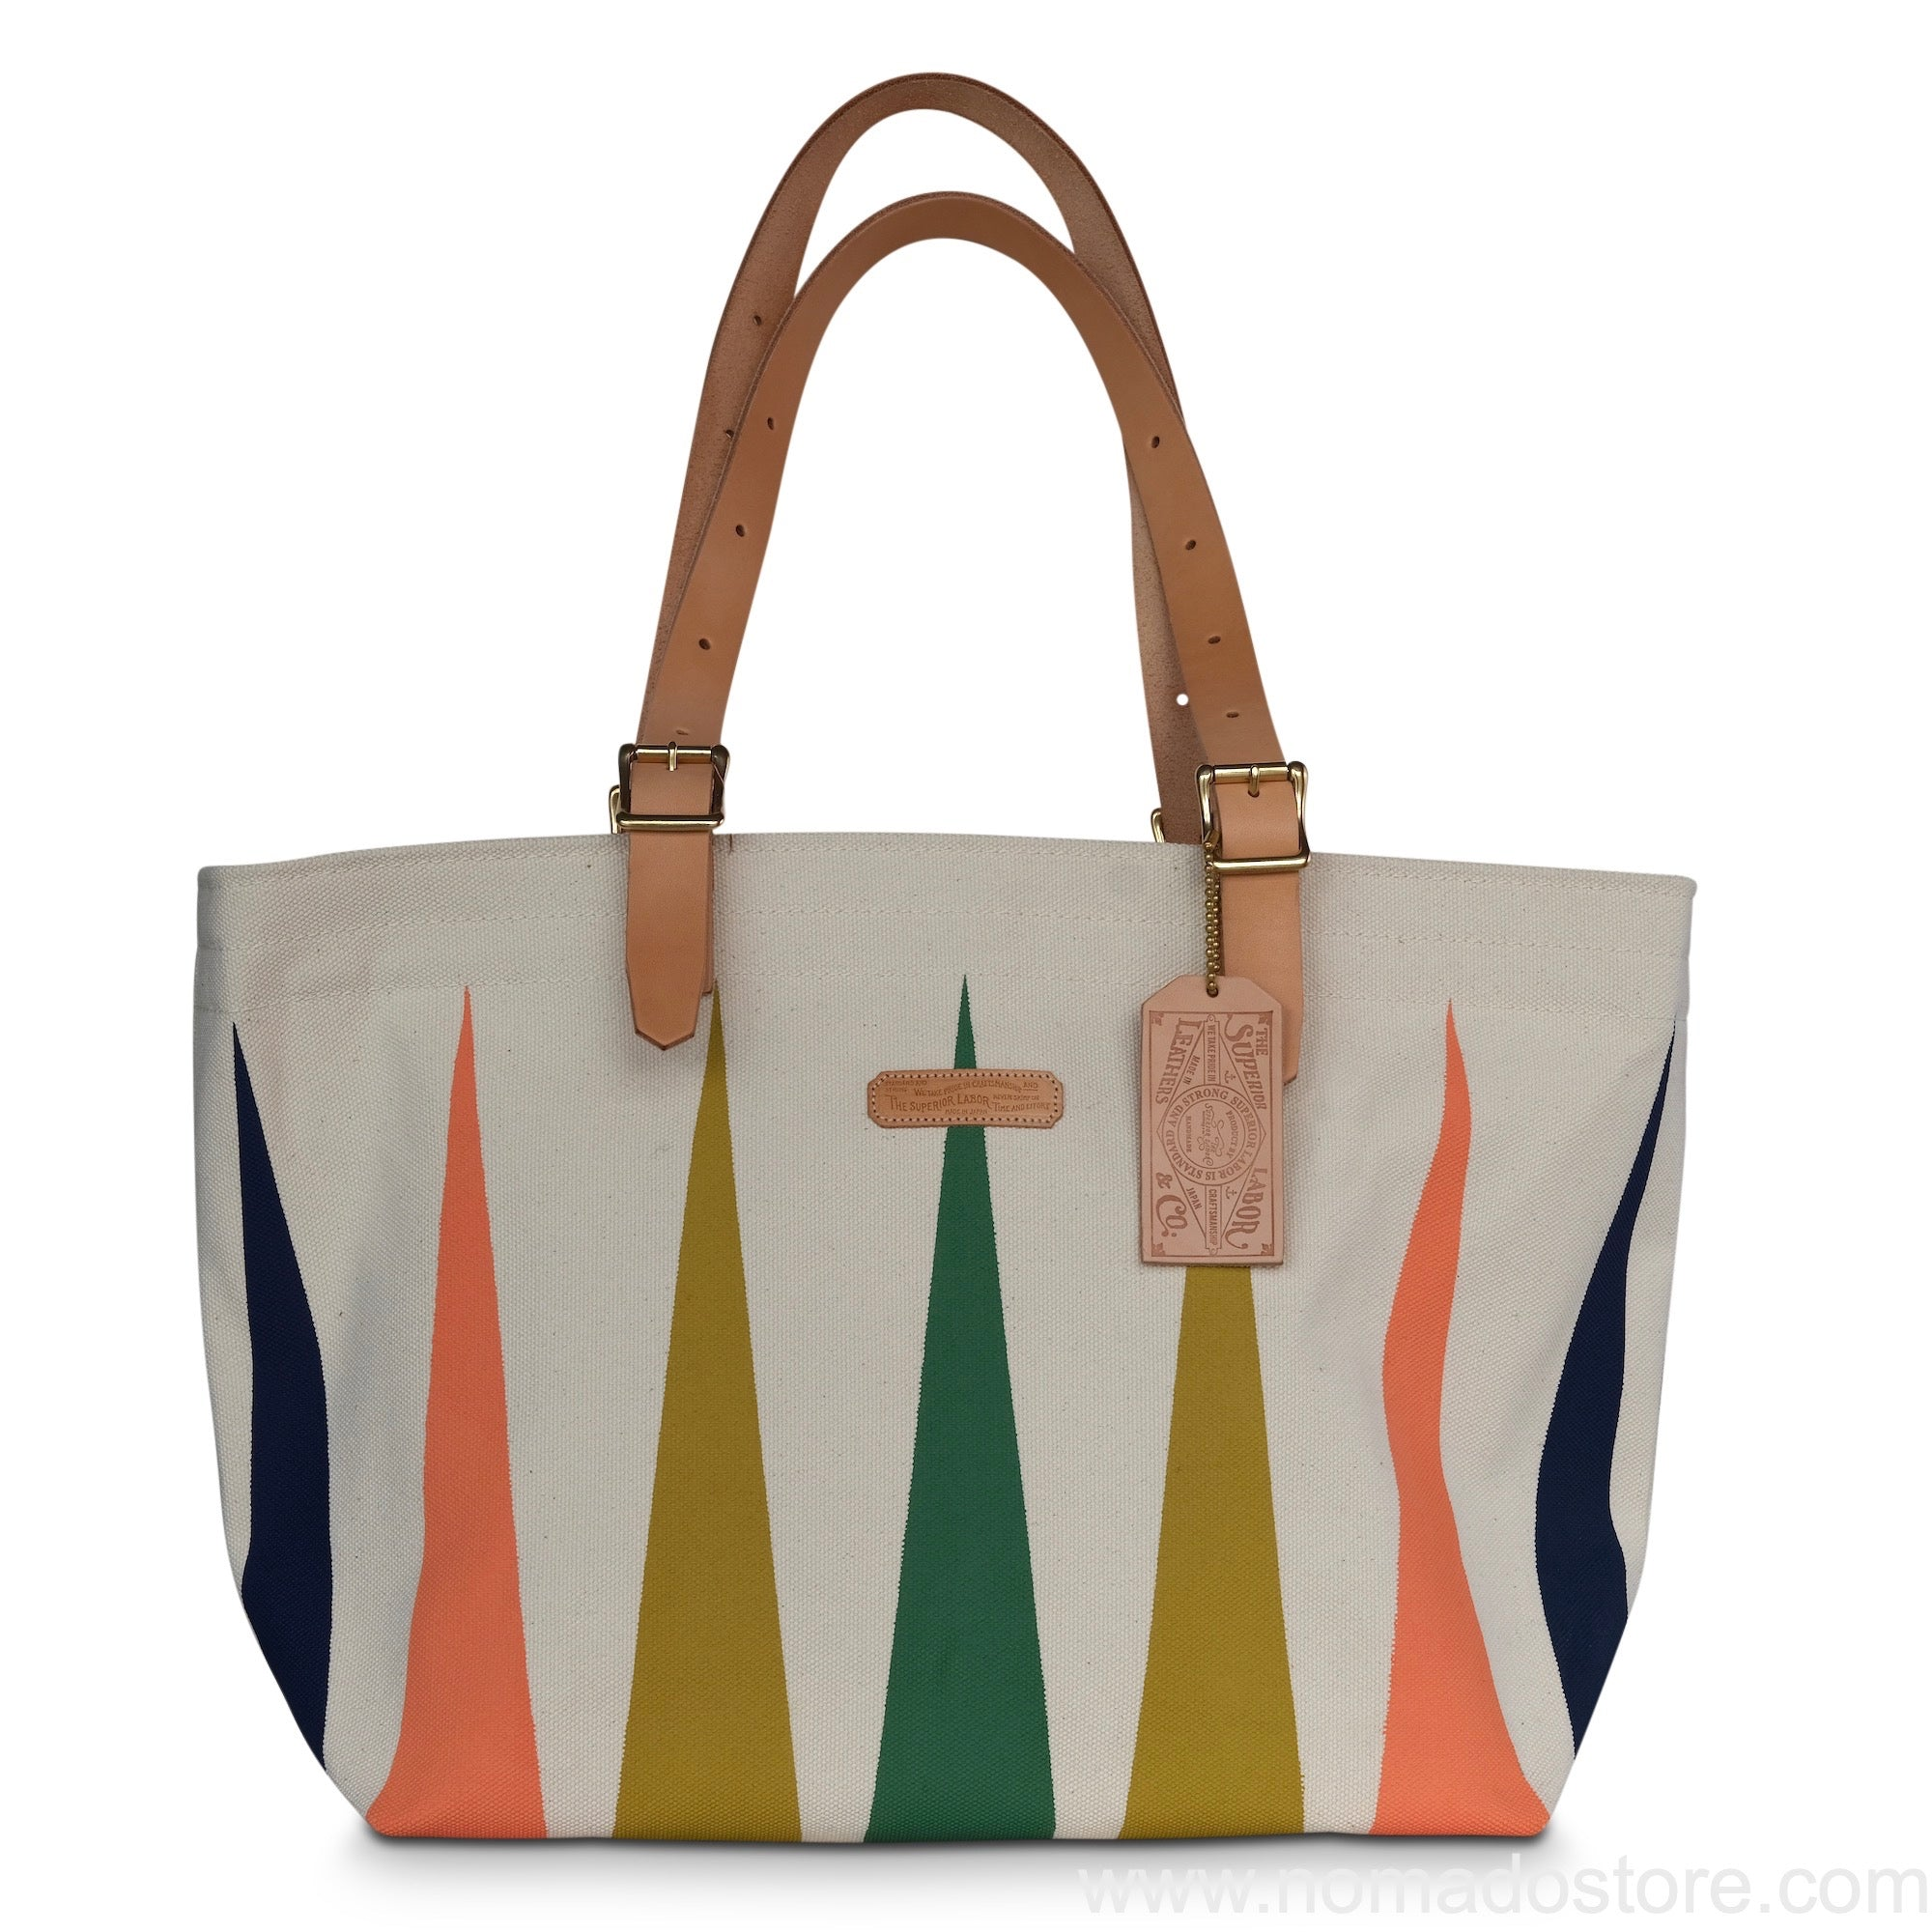 The Superior Labor Geometric Tote Bag - NOMADO Store